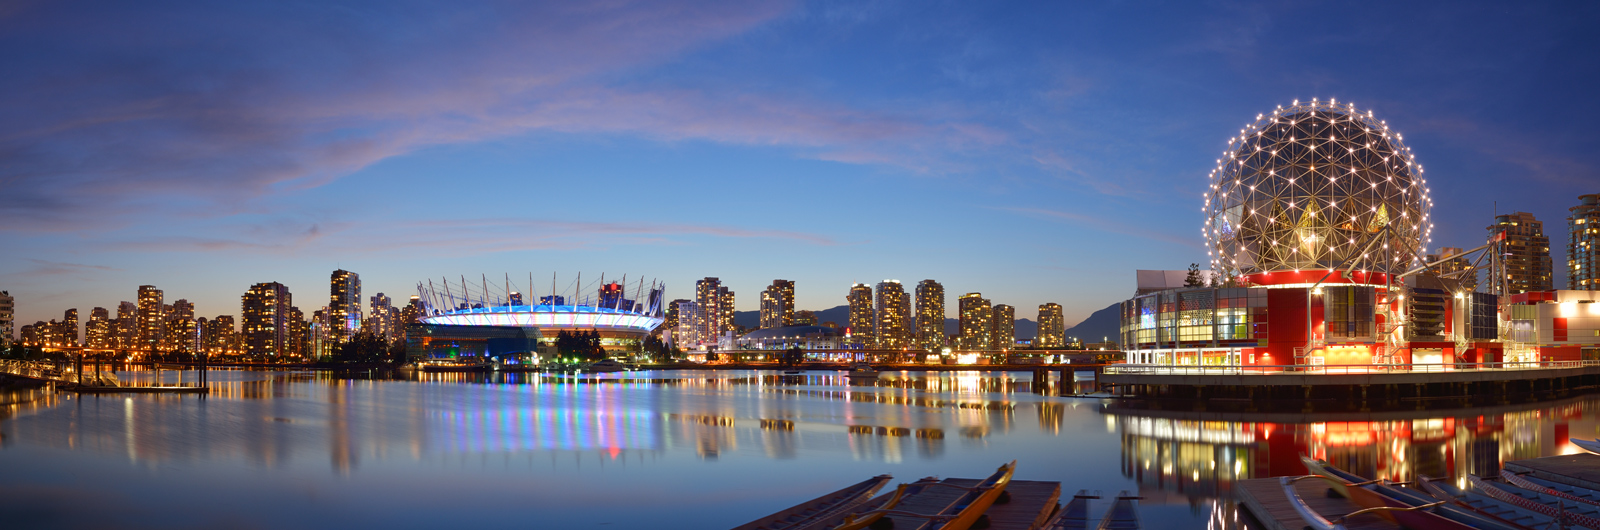 A picture of the Vancouver skyline at night featuring BC Place Stadium and Telus World of Science buildings featuring the words CAA Vacations exclusive benefits and get extras on your vacation just for being a CAA Member.